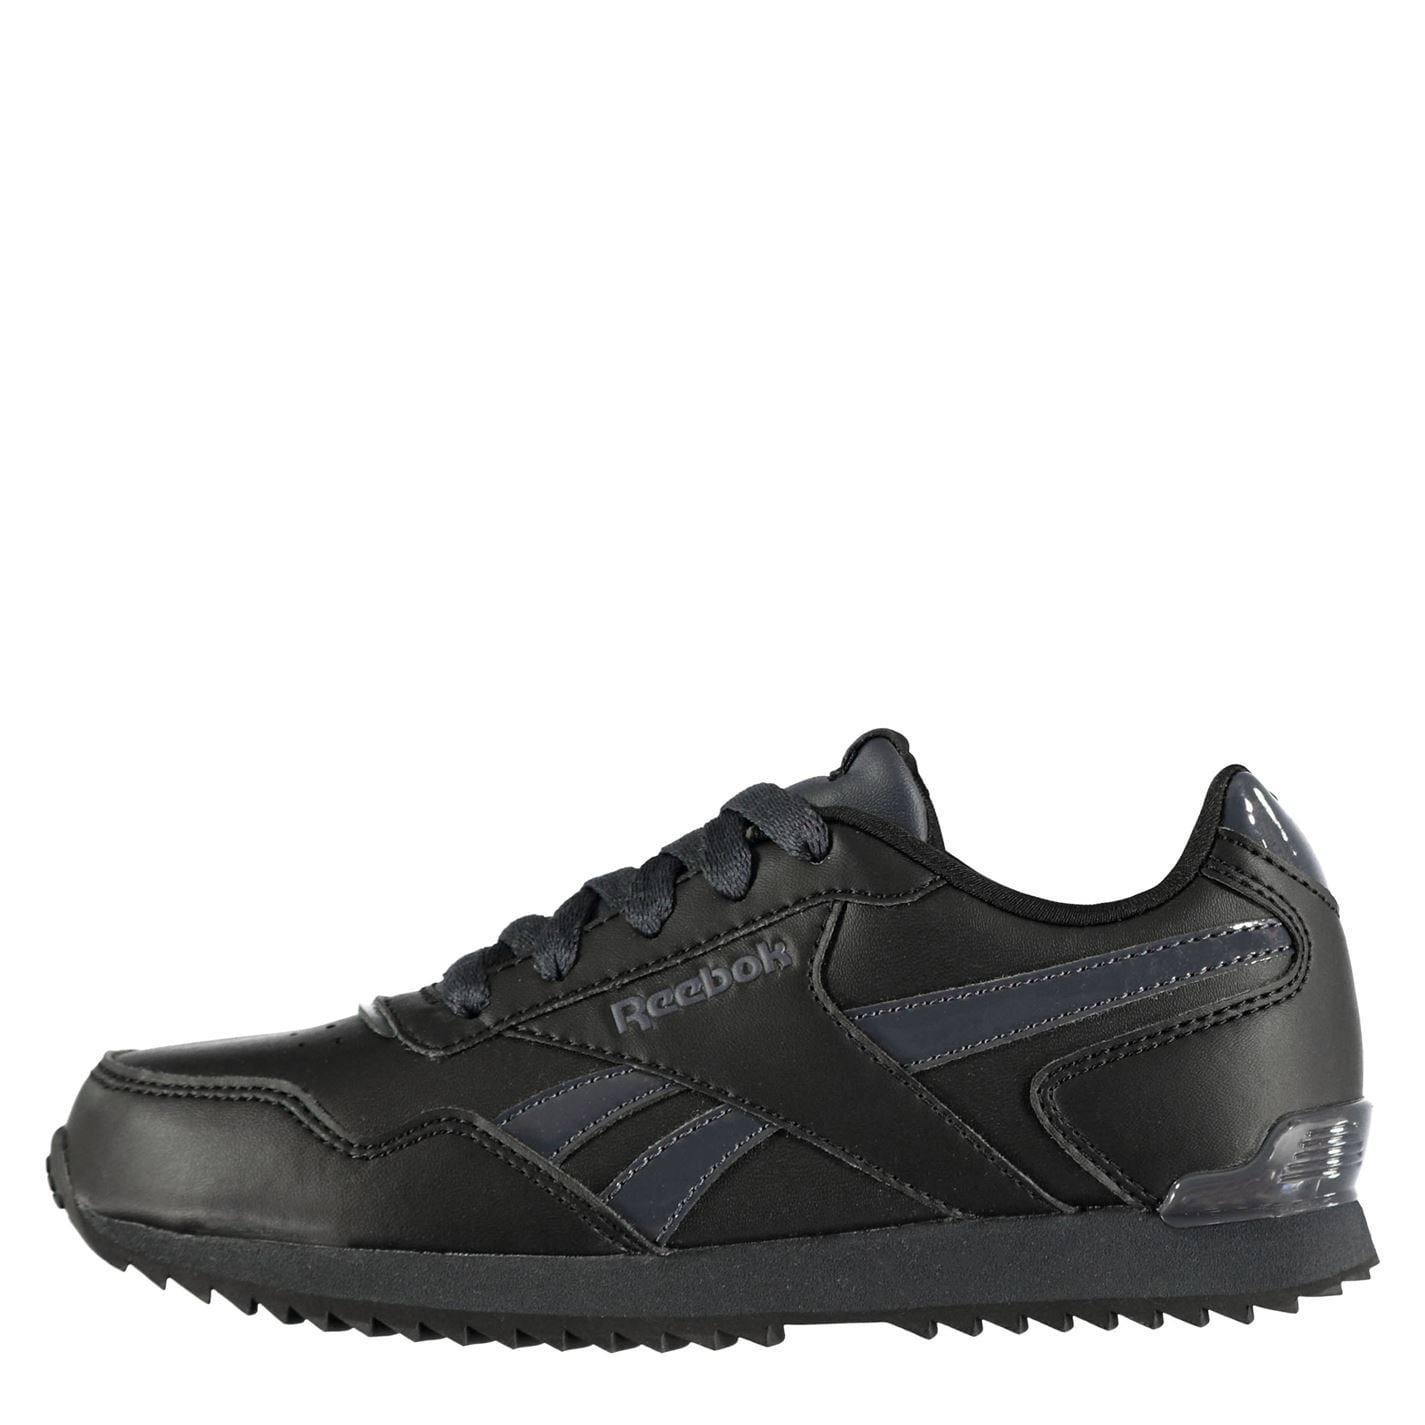 Reebok Royal Glide Ripple Clip Boys Shoes Black